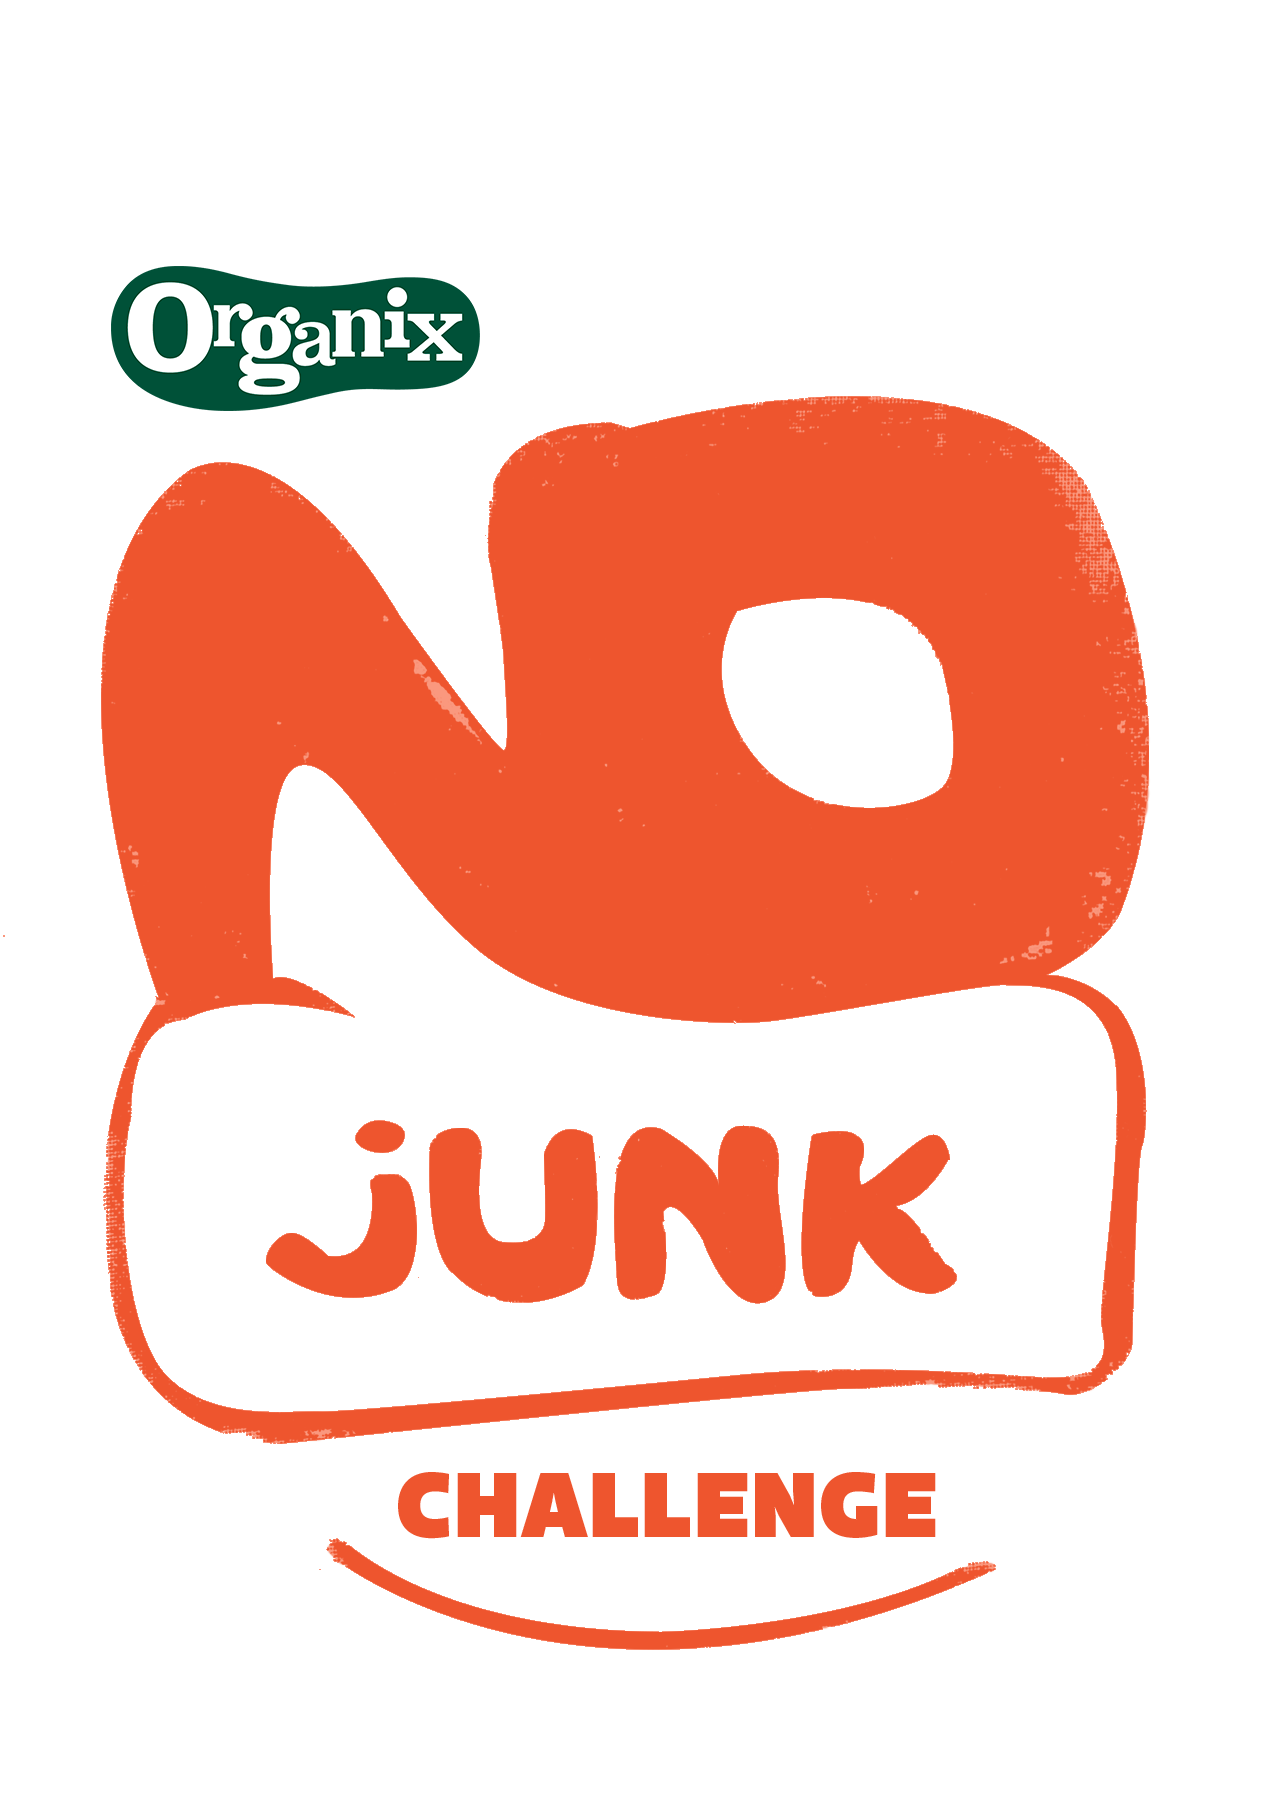 The No Junk Campaign is coming soon…